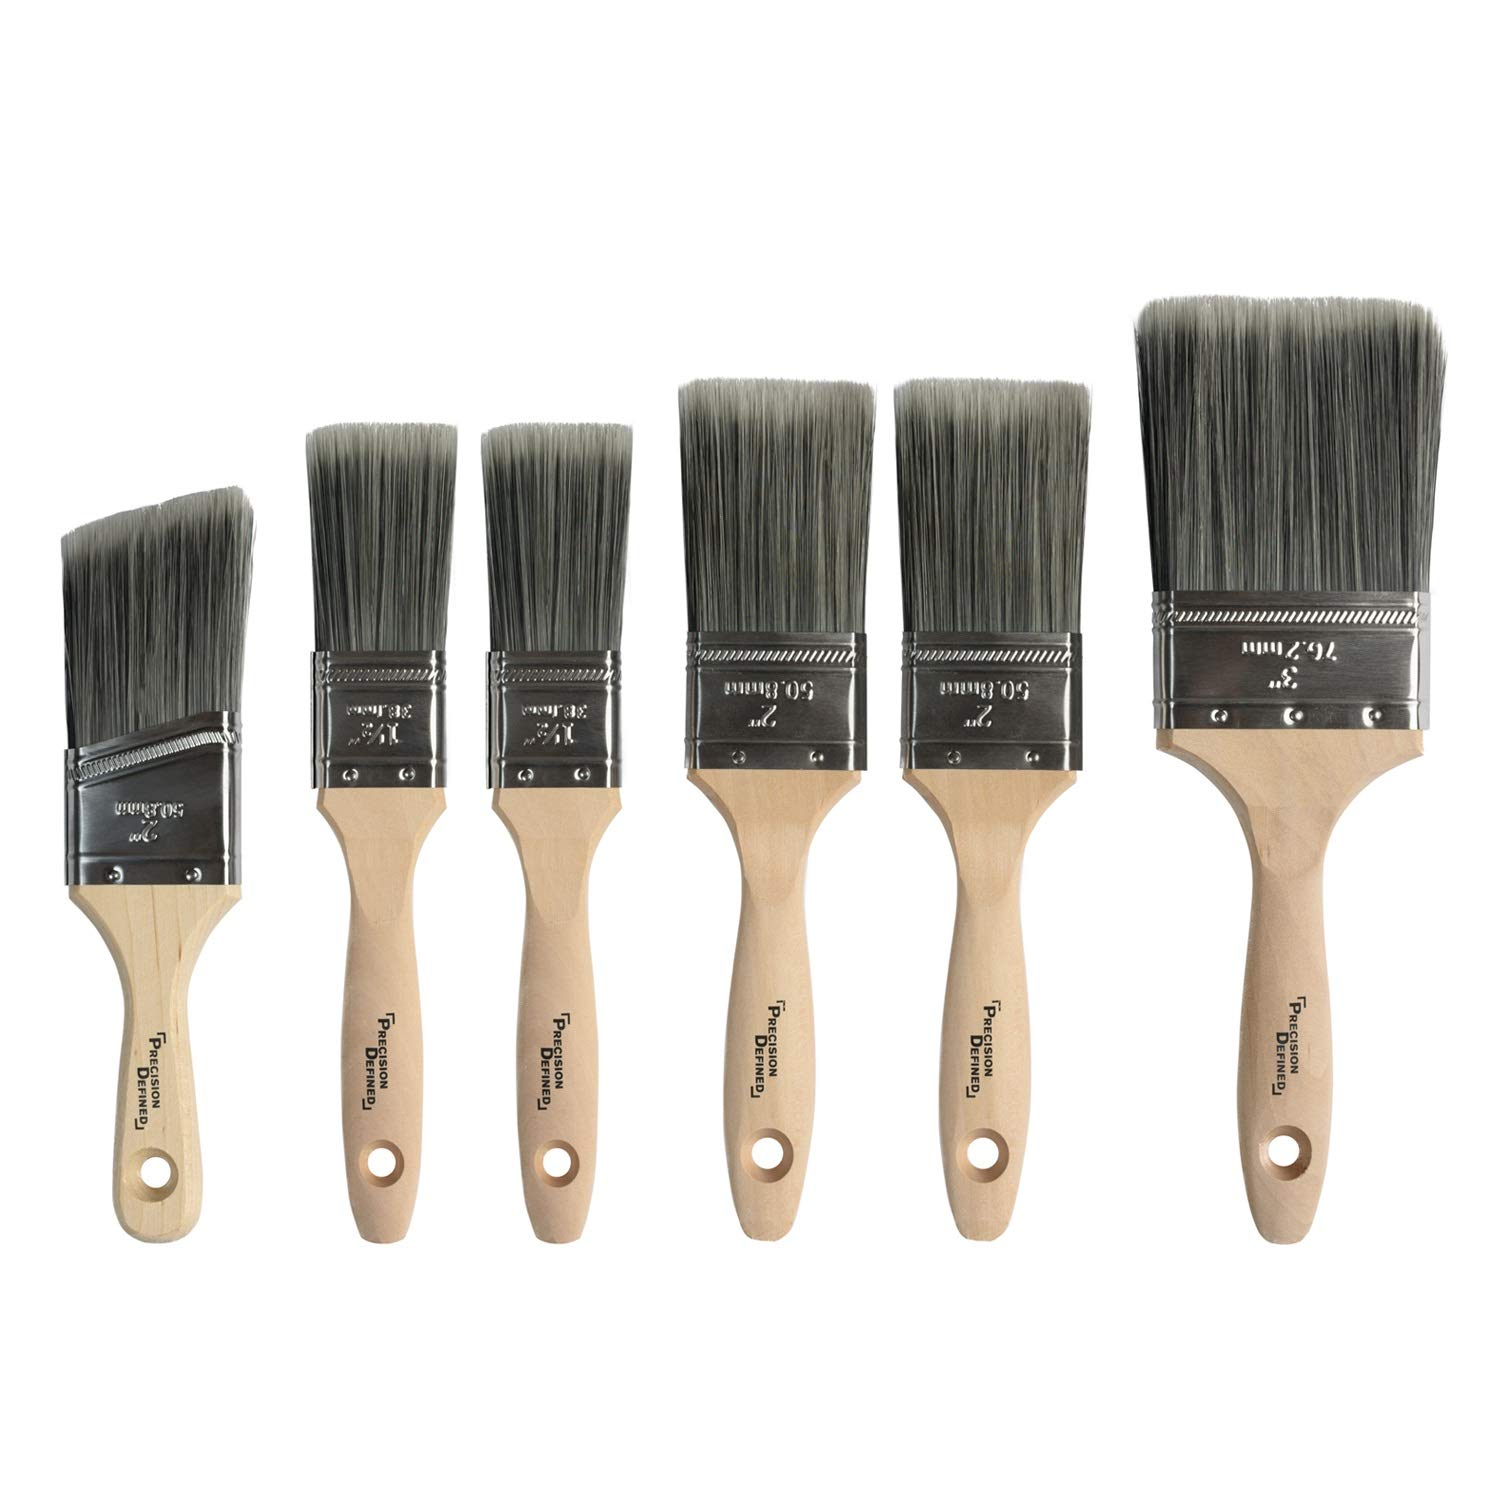 Precision Defined Heavy-Duty Professional 6 Piece Paintbrush Set, with Firm Bristles and Natural Birch Handles by Precision Defined